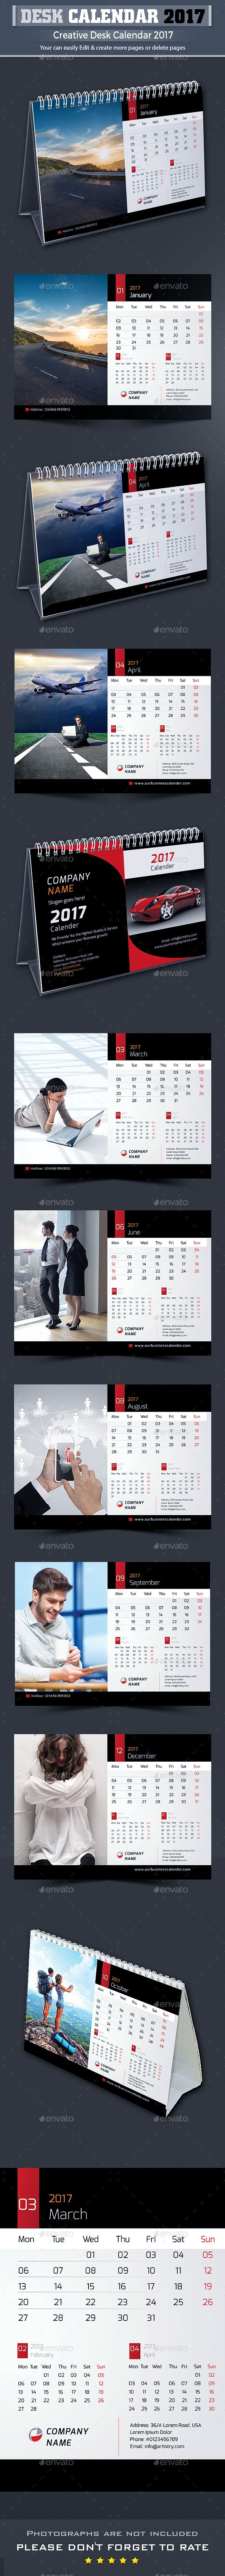 Desk Calendar 2017 Template InDesign INDD. Download here: https://graphicriver.net/item/desk-calendar-2017/16721571?ref=ksioks